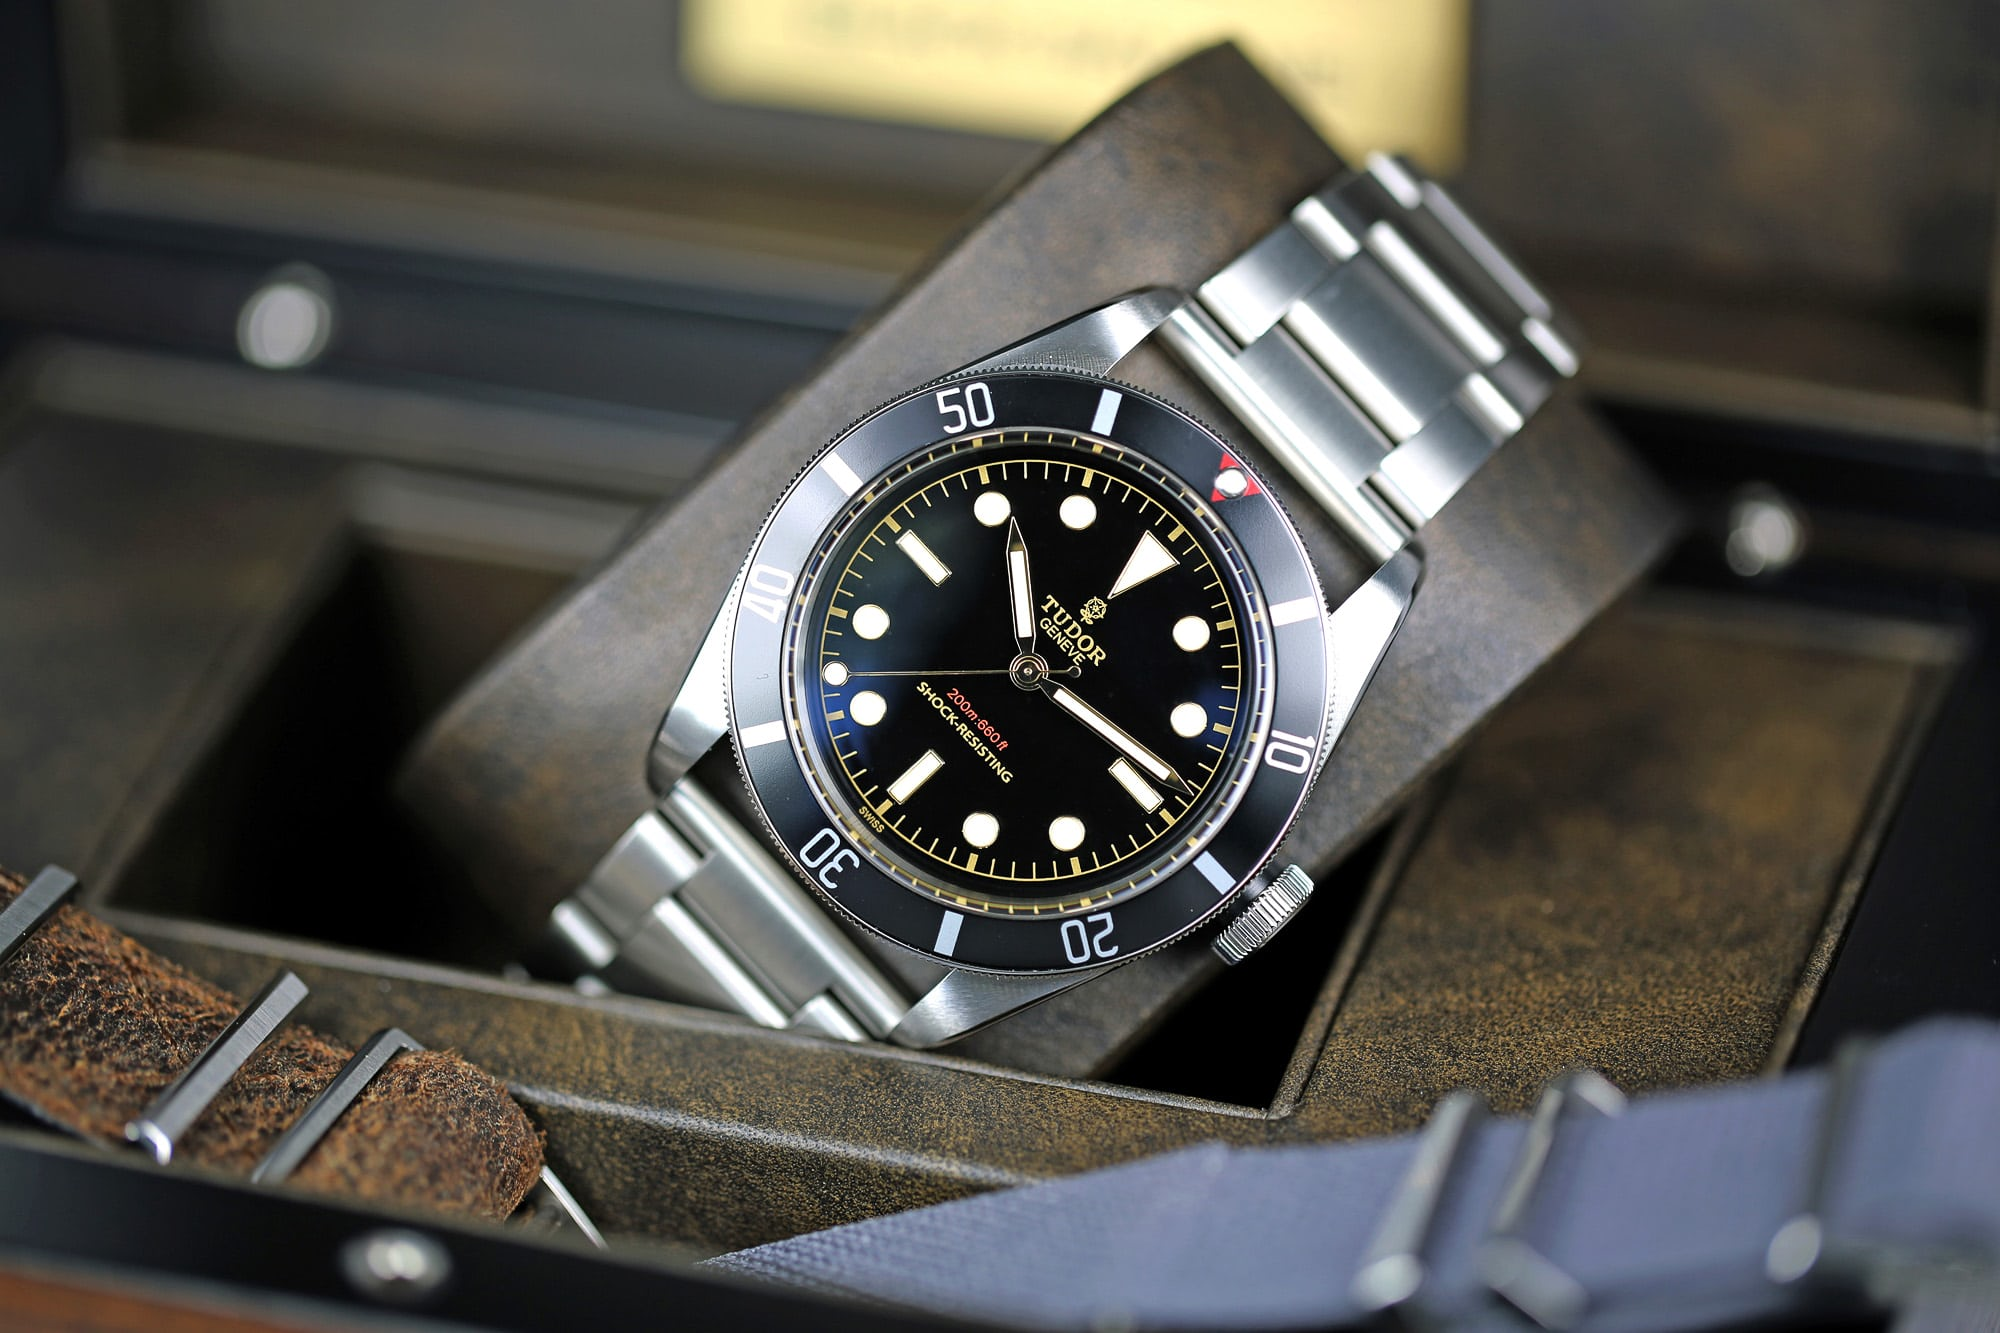 98f9a11c781 Breaking News  The Tudor Black Bay One At Only Watch 2015 Sells For Over  100 Times Retail Price - HODINKEE